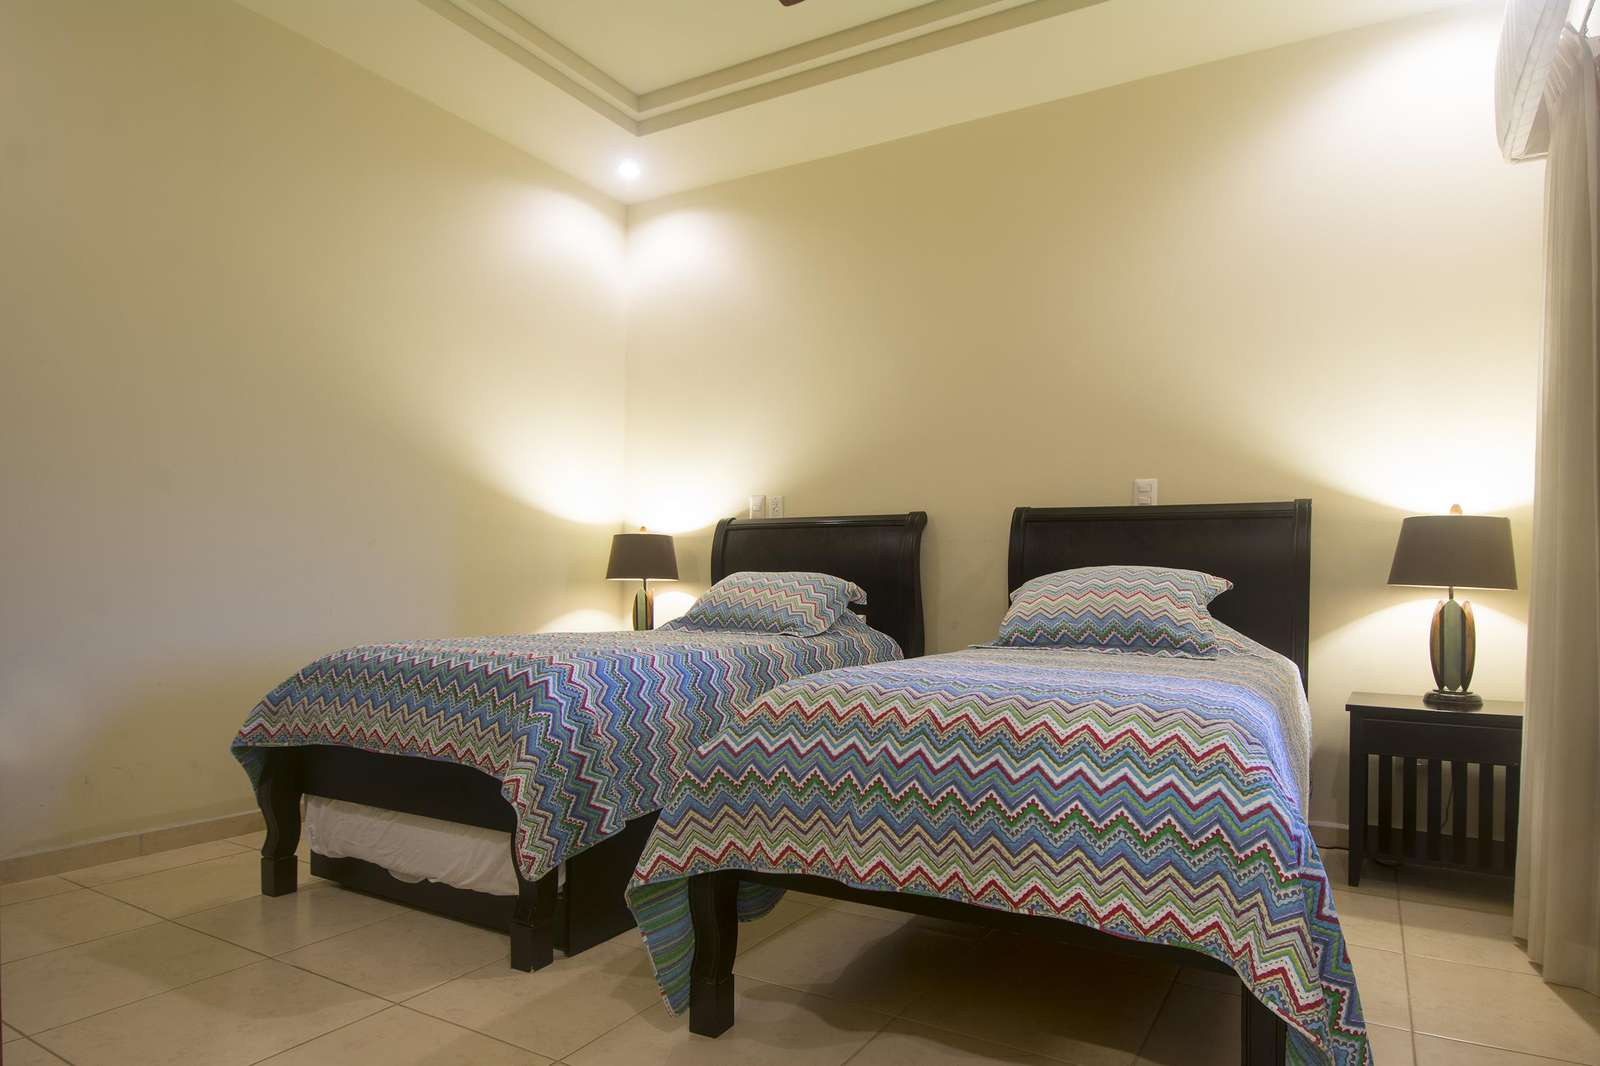 Guest bedroom, two twin beds and 1 trundle bed